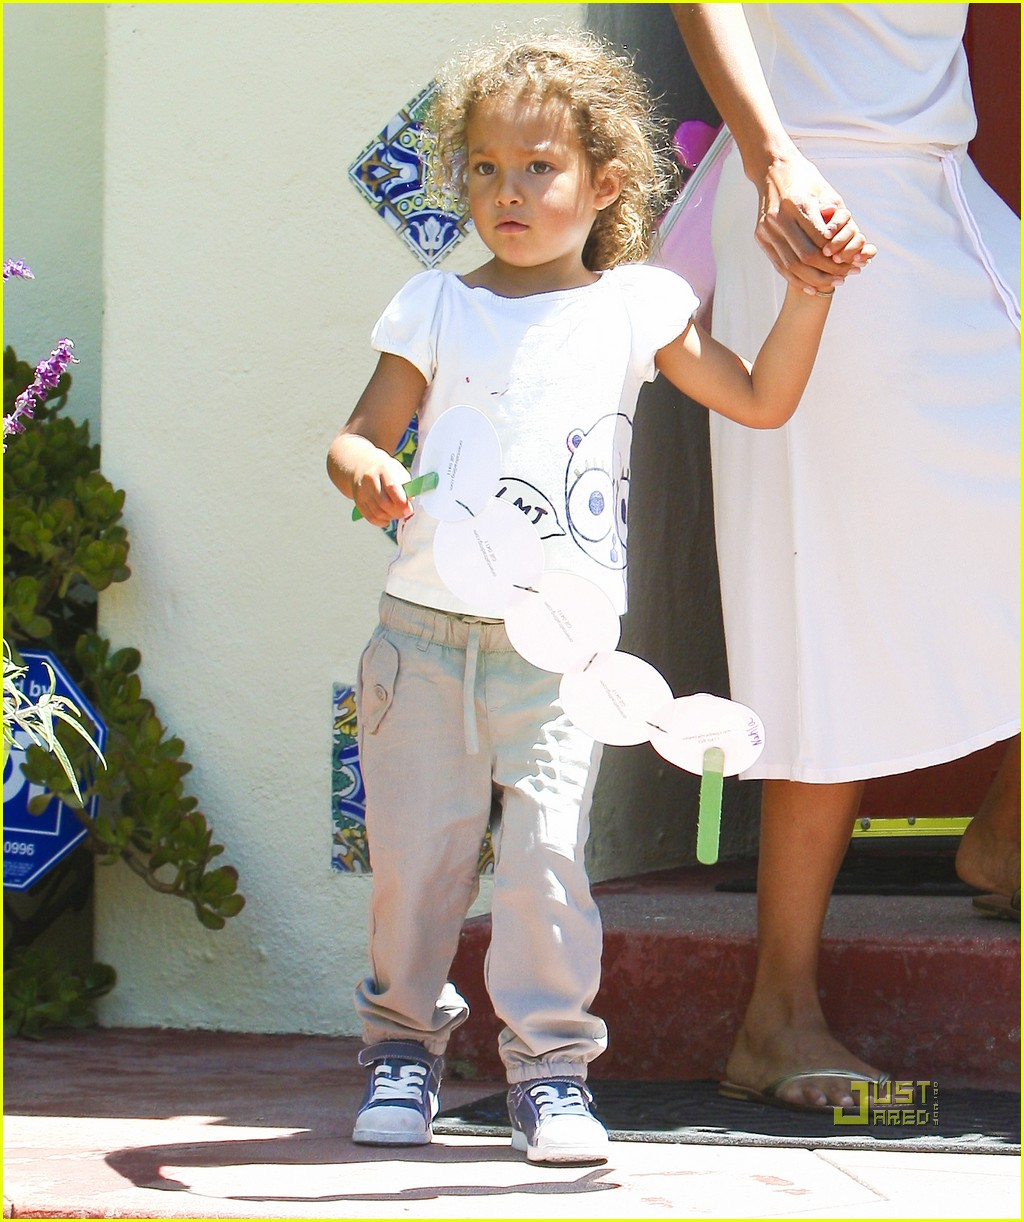 http://1.bp.blogspot.com/-9eTN4-ttfp8/TjrSWn08G4I/AAAAAAAAN_E/z01awK6jRMA/s1600/halle-berry-nahla-picked-up-from-school-18.jpg